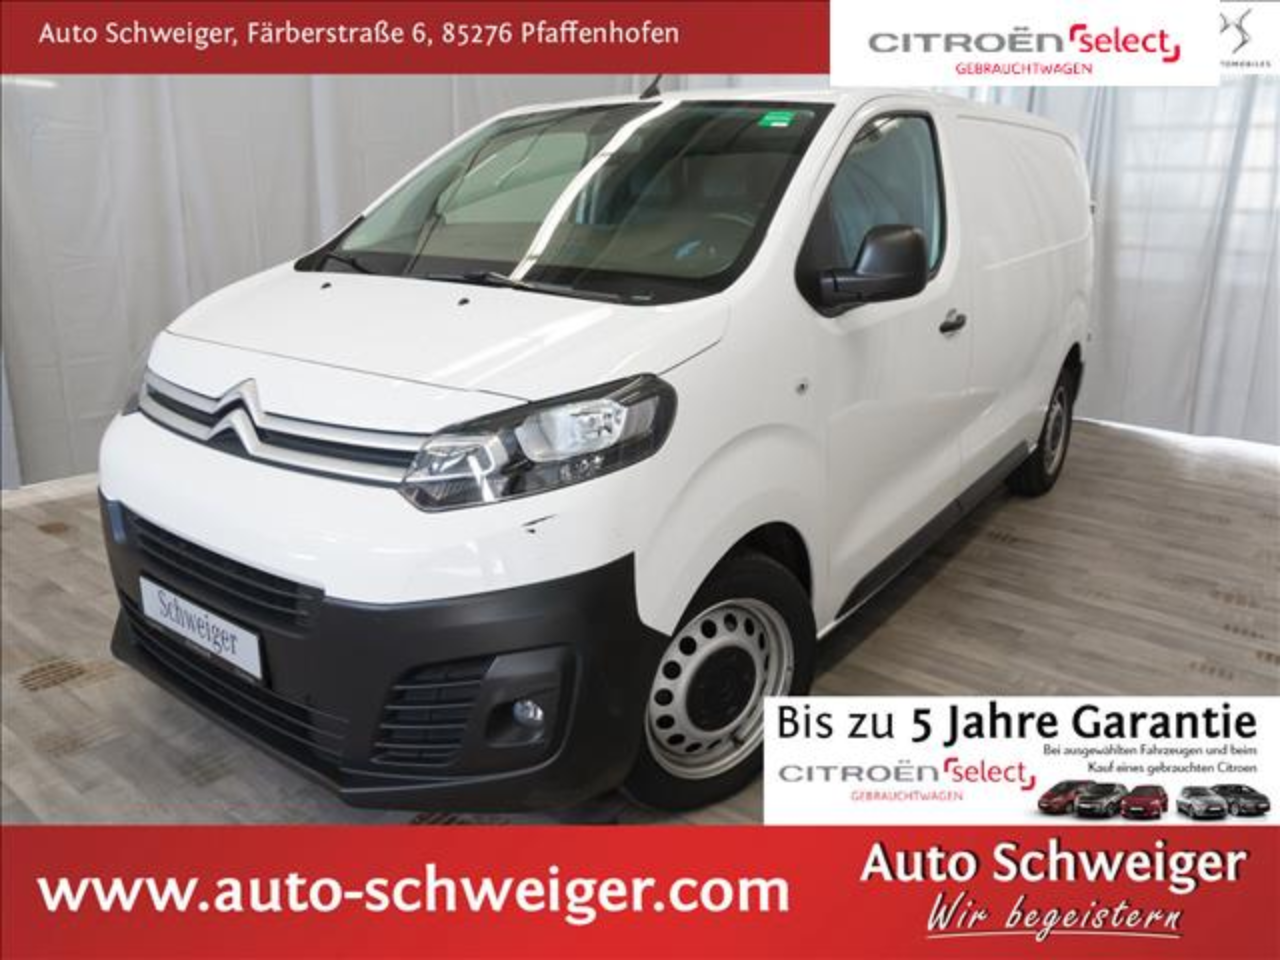 Citroën Jumpy KaWa Business M PTS hinten Klima Radio DAB